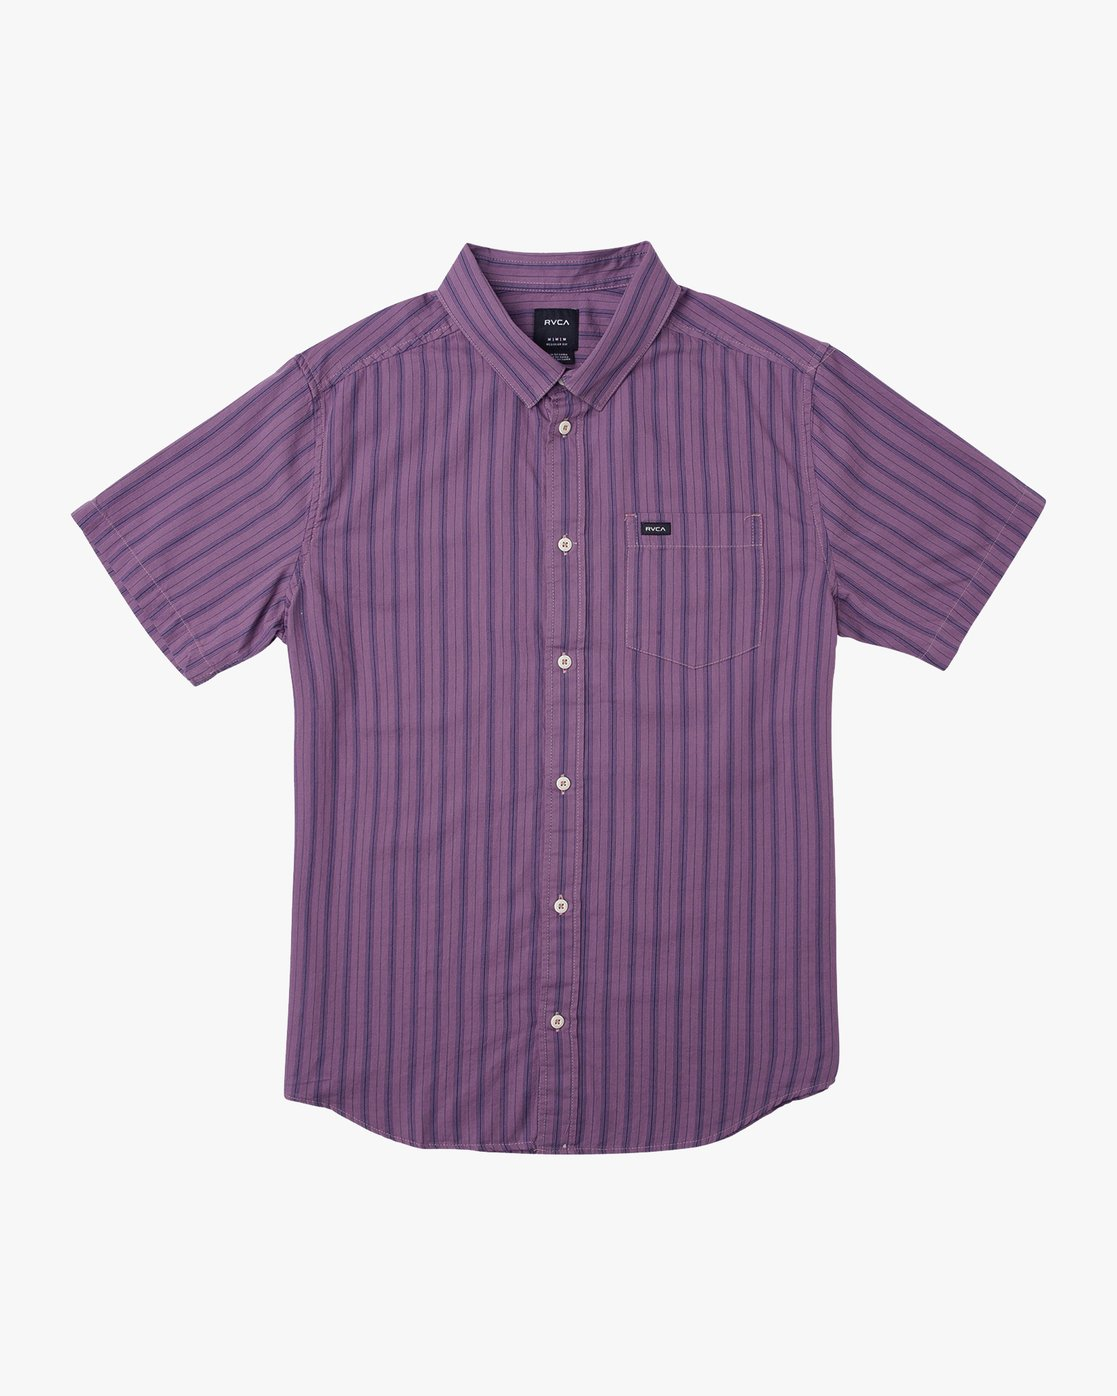 0 Shuffle Stripe Button-Up Shirt Purple M564URAS RVCA